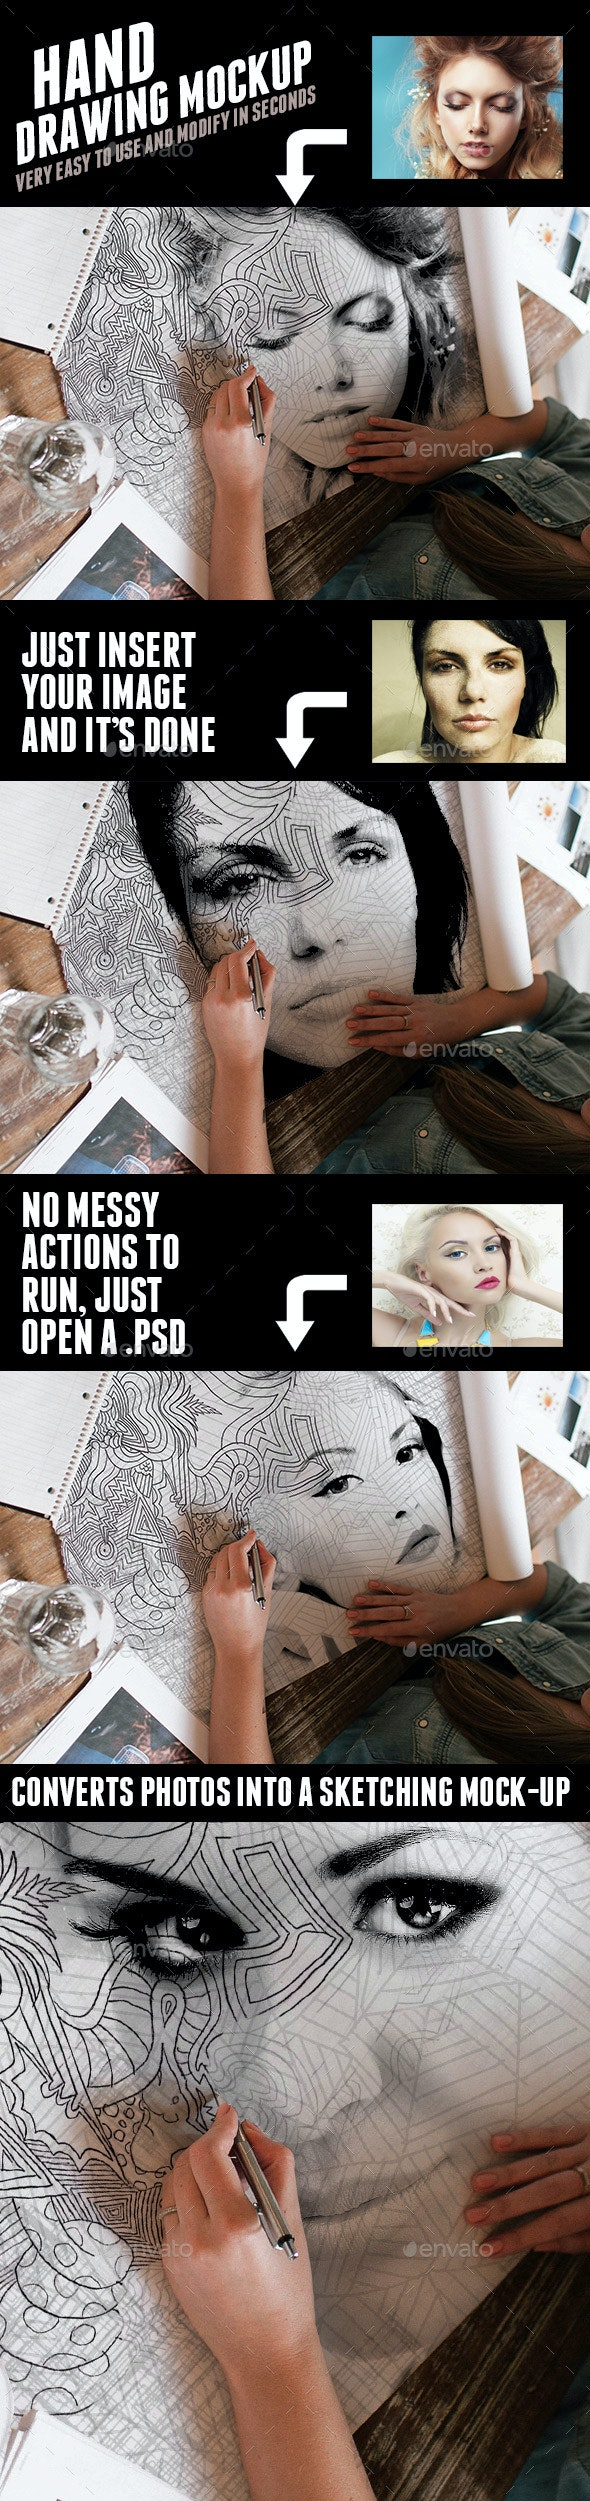 Hand Drawing Mock-up Scene - Artistic Photo Templates